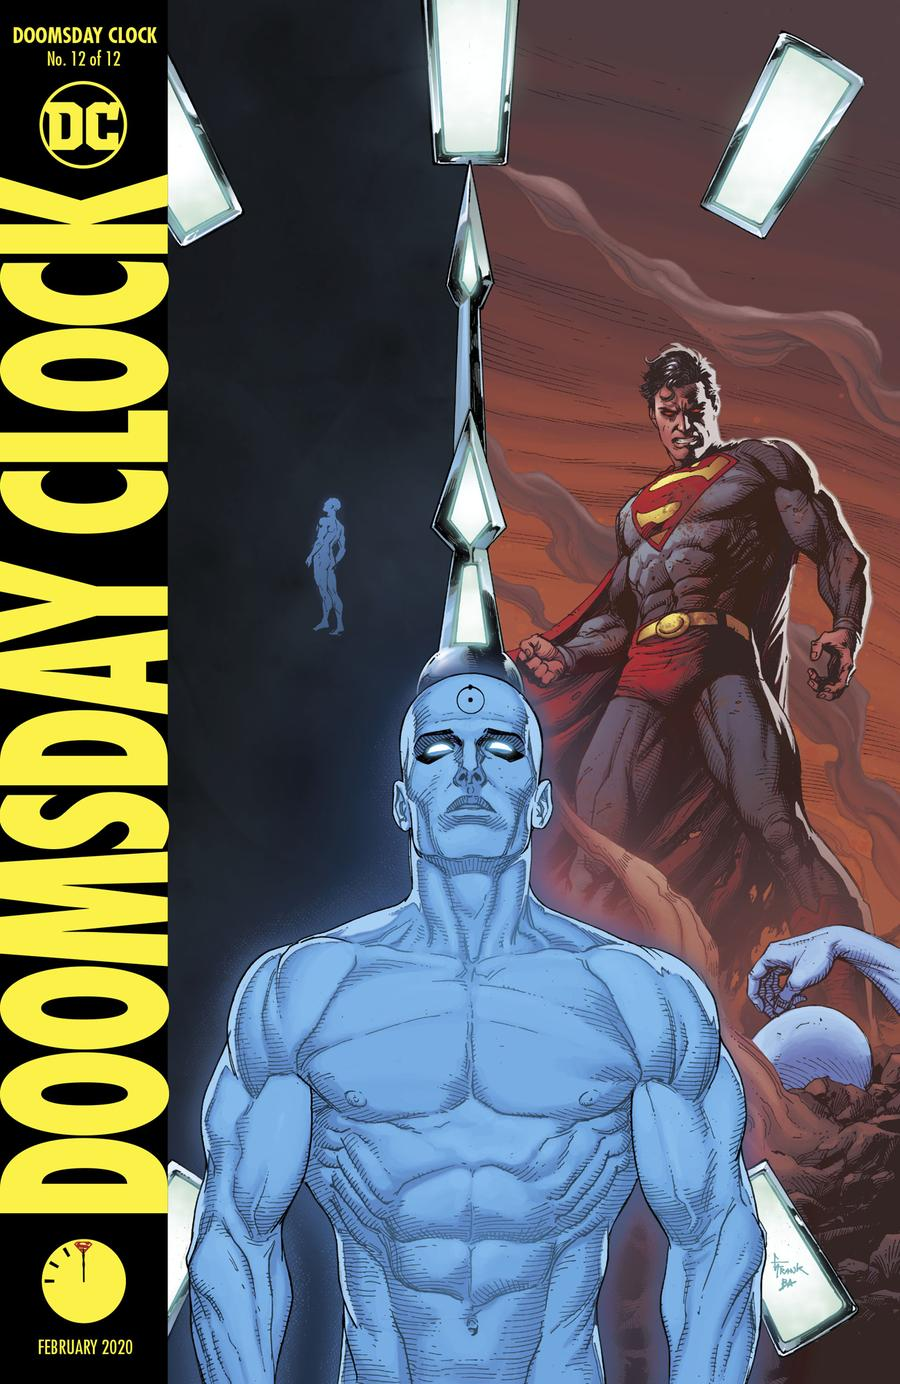 Doomsday Clock Vol 1 12 Dc Database Fandom